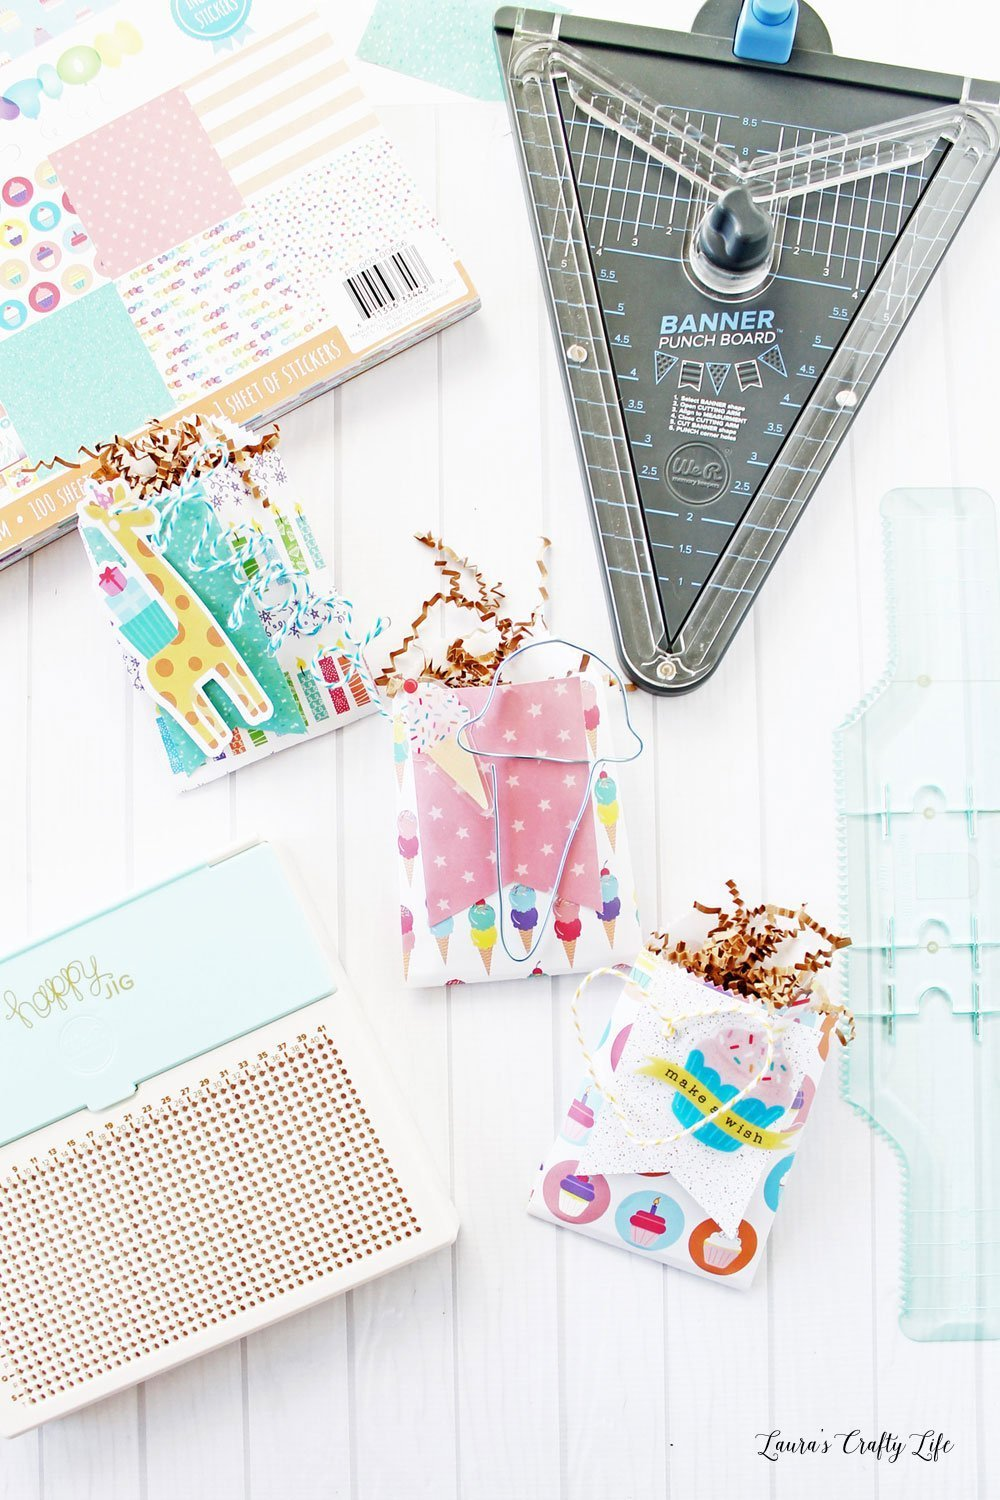 Create birthday treat bags using We R Memory Keepers tools - happy jig, goodie bag guide, and banner punch board. #laurascraftylife #wermemorykeepers #birthday